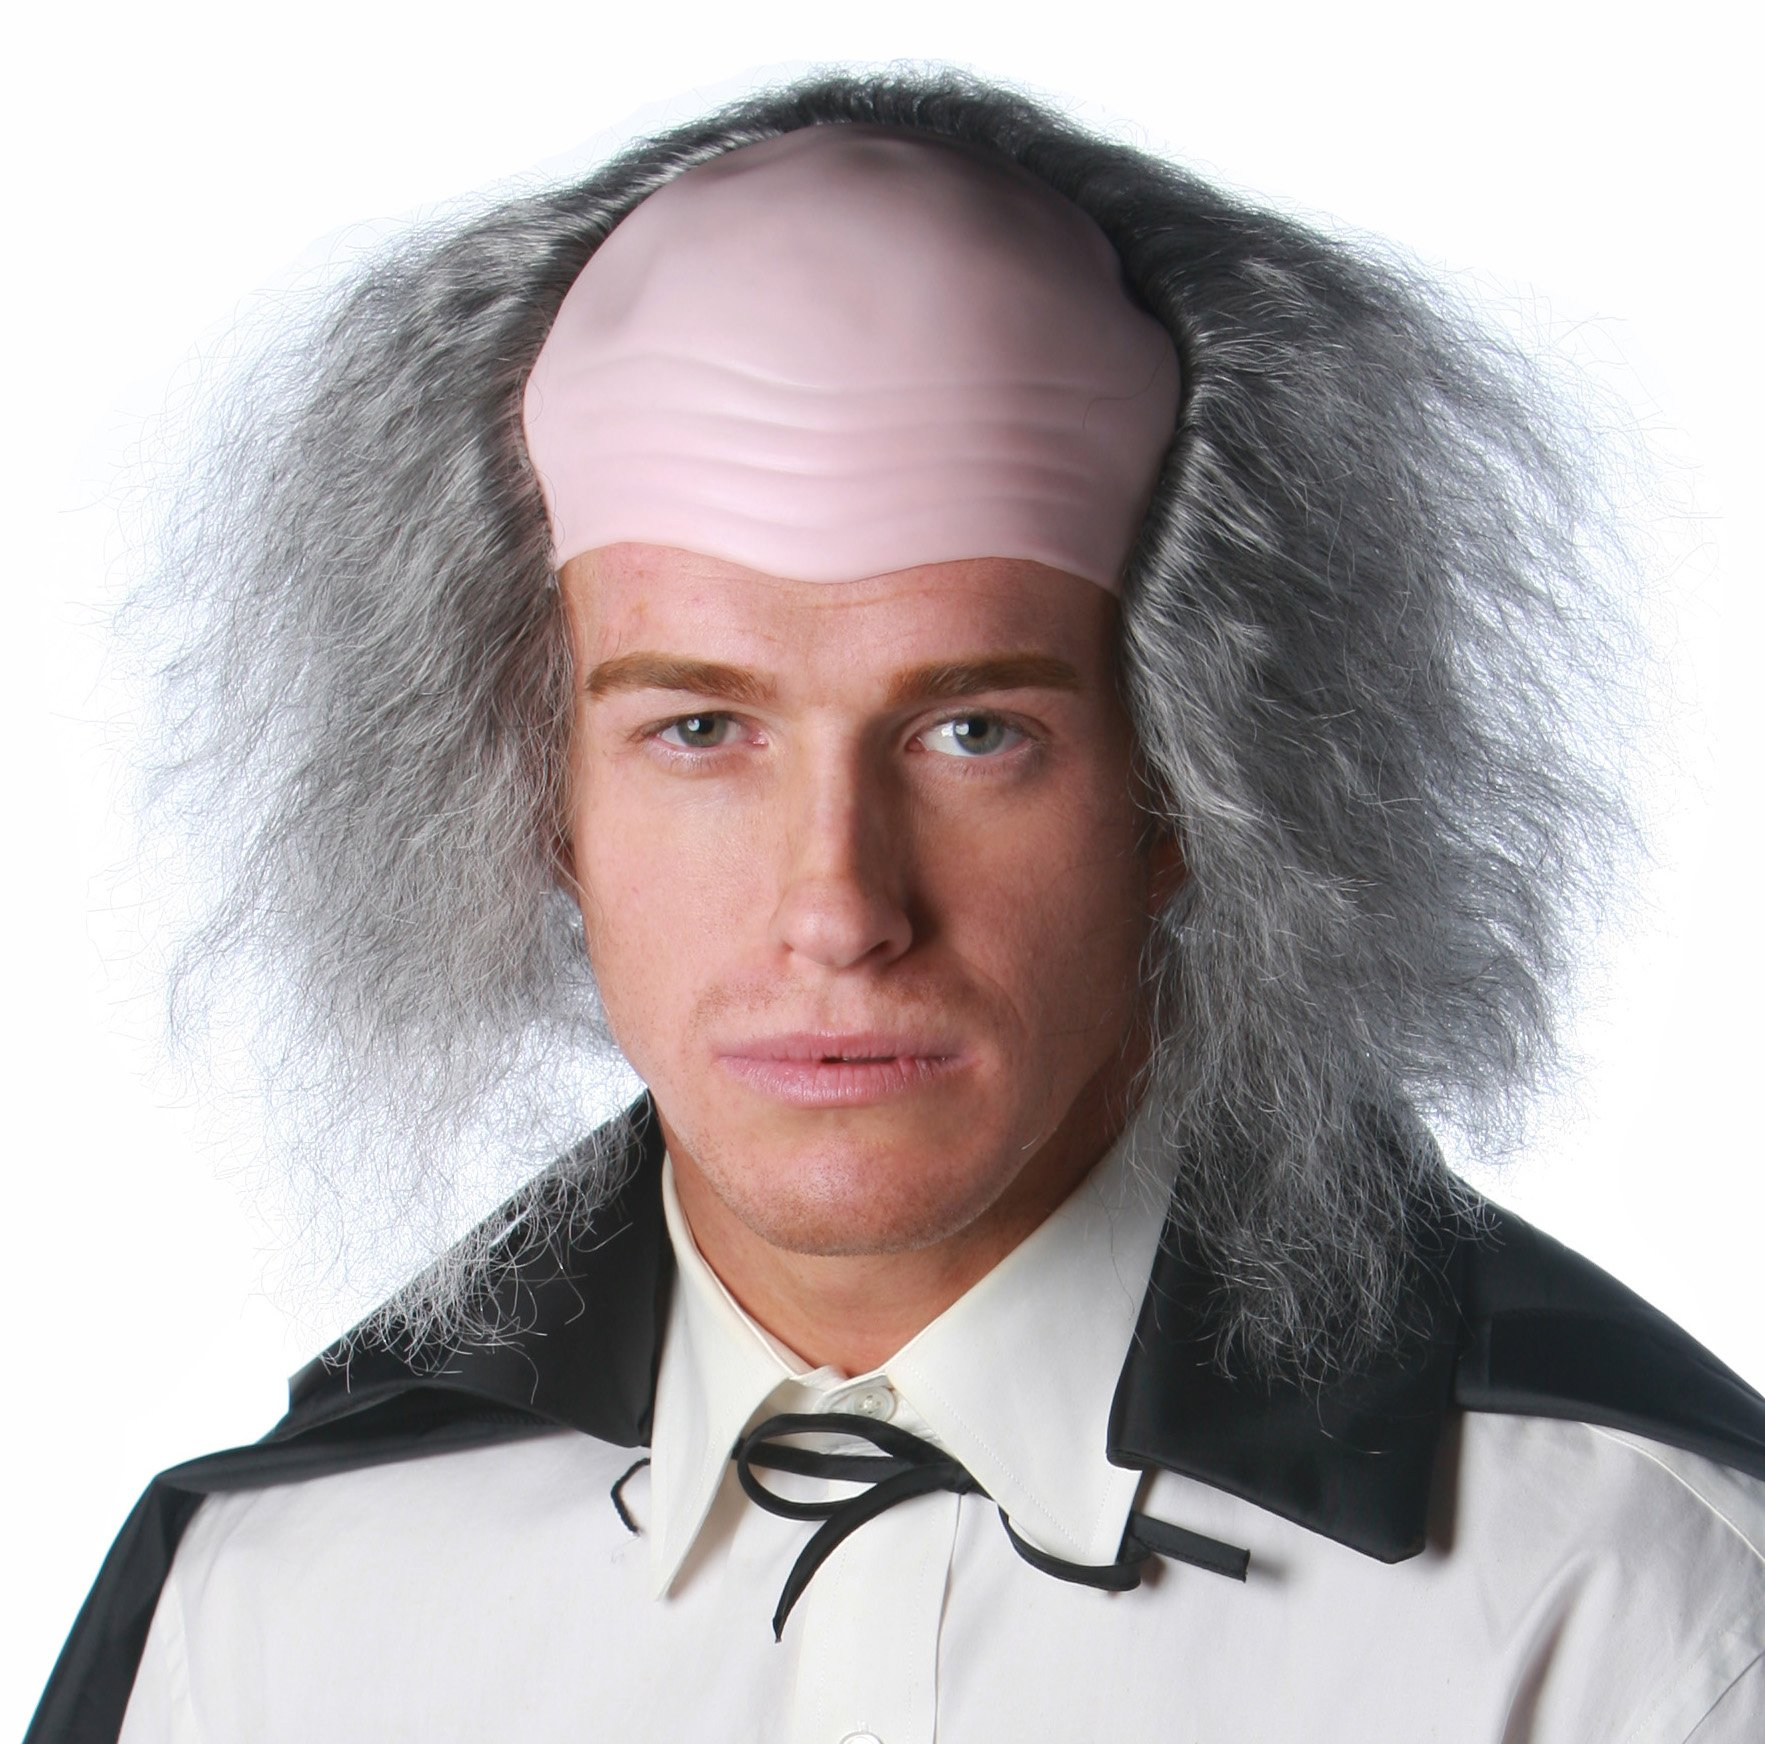 LuxeWigs Deluxe Quality Bald Cap Scary Old Man Theatrical Costume Wig - Gray